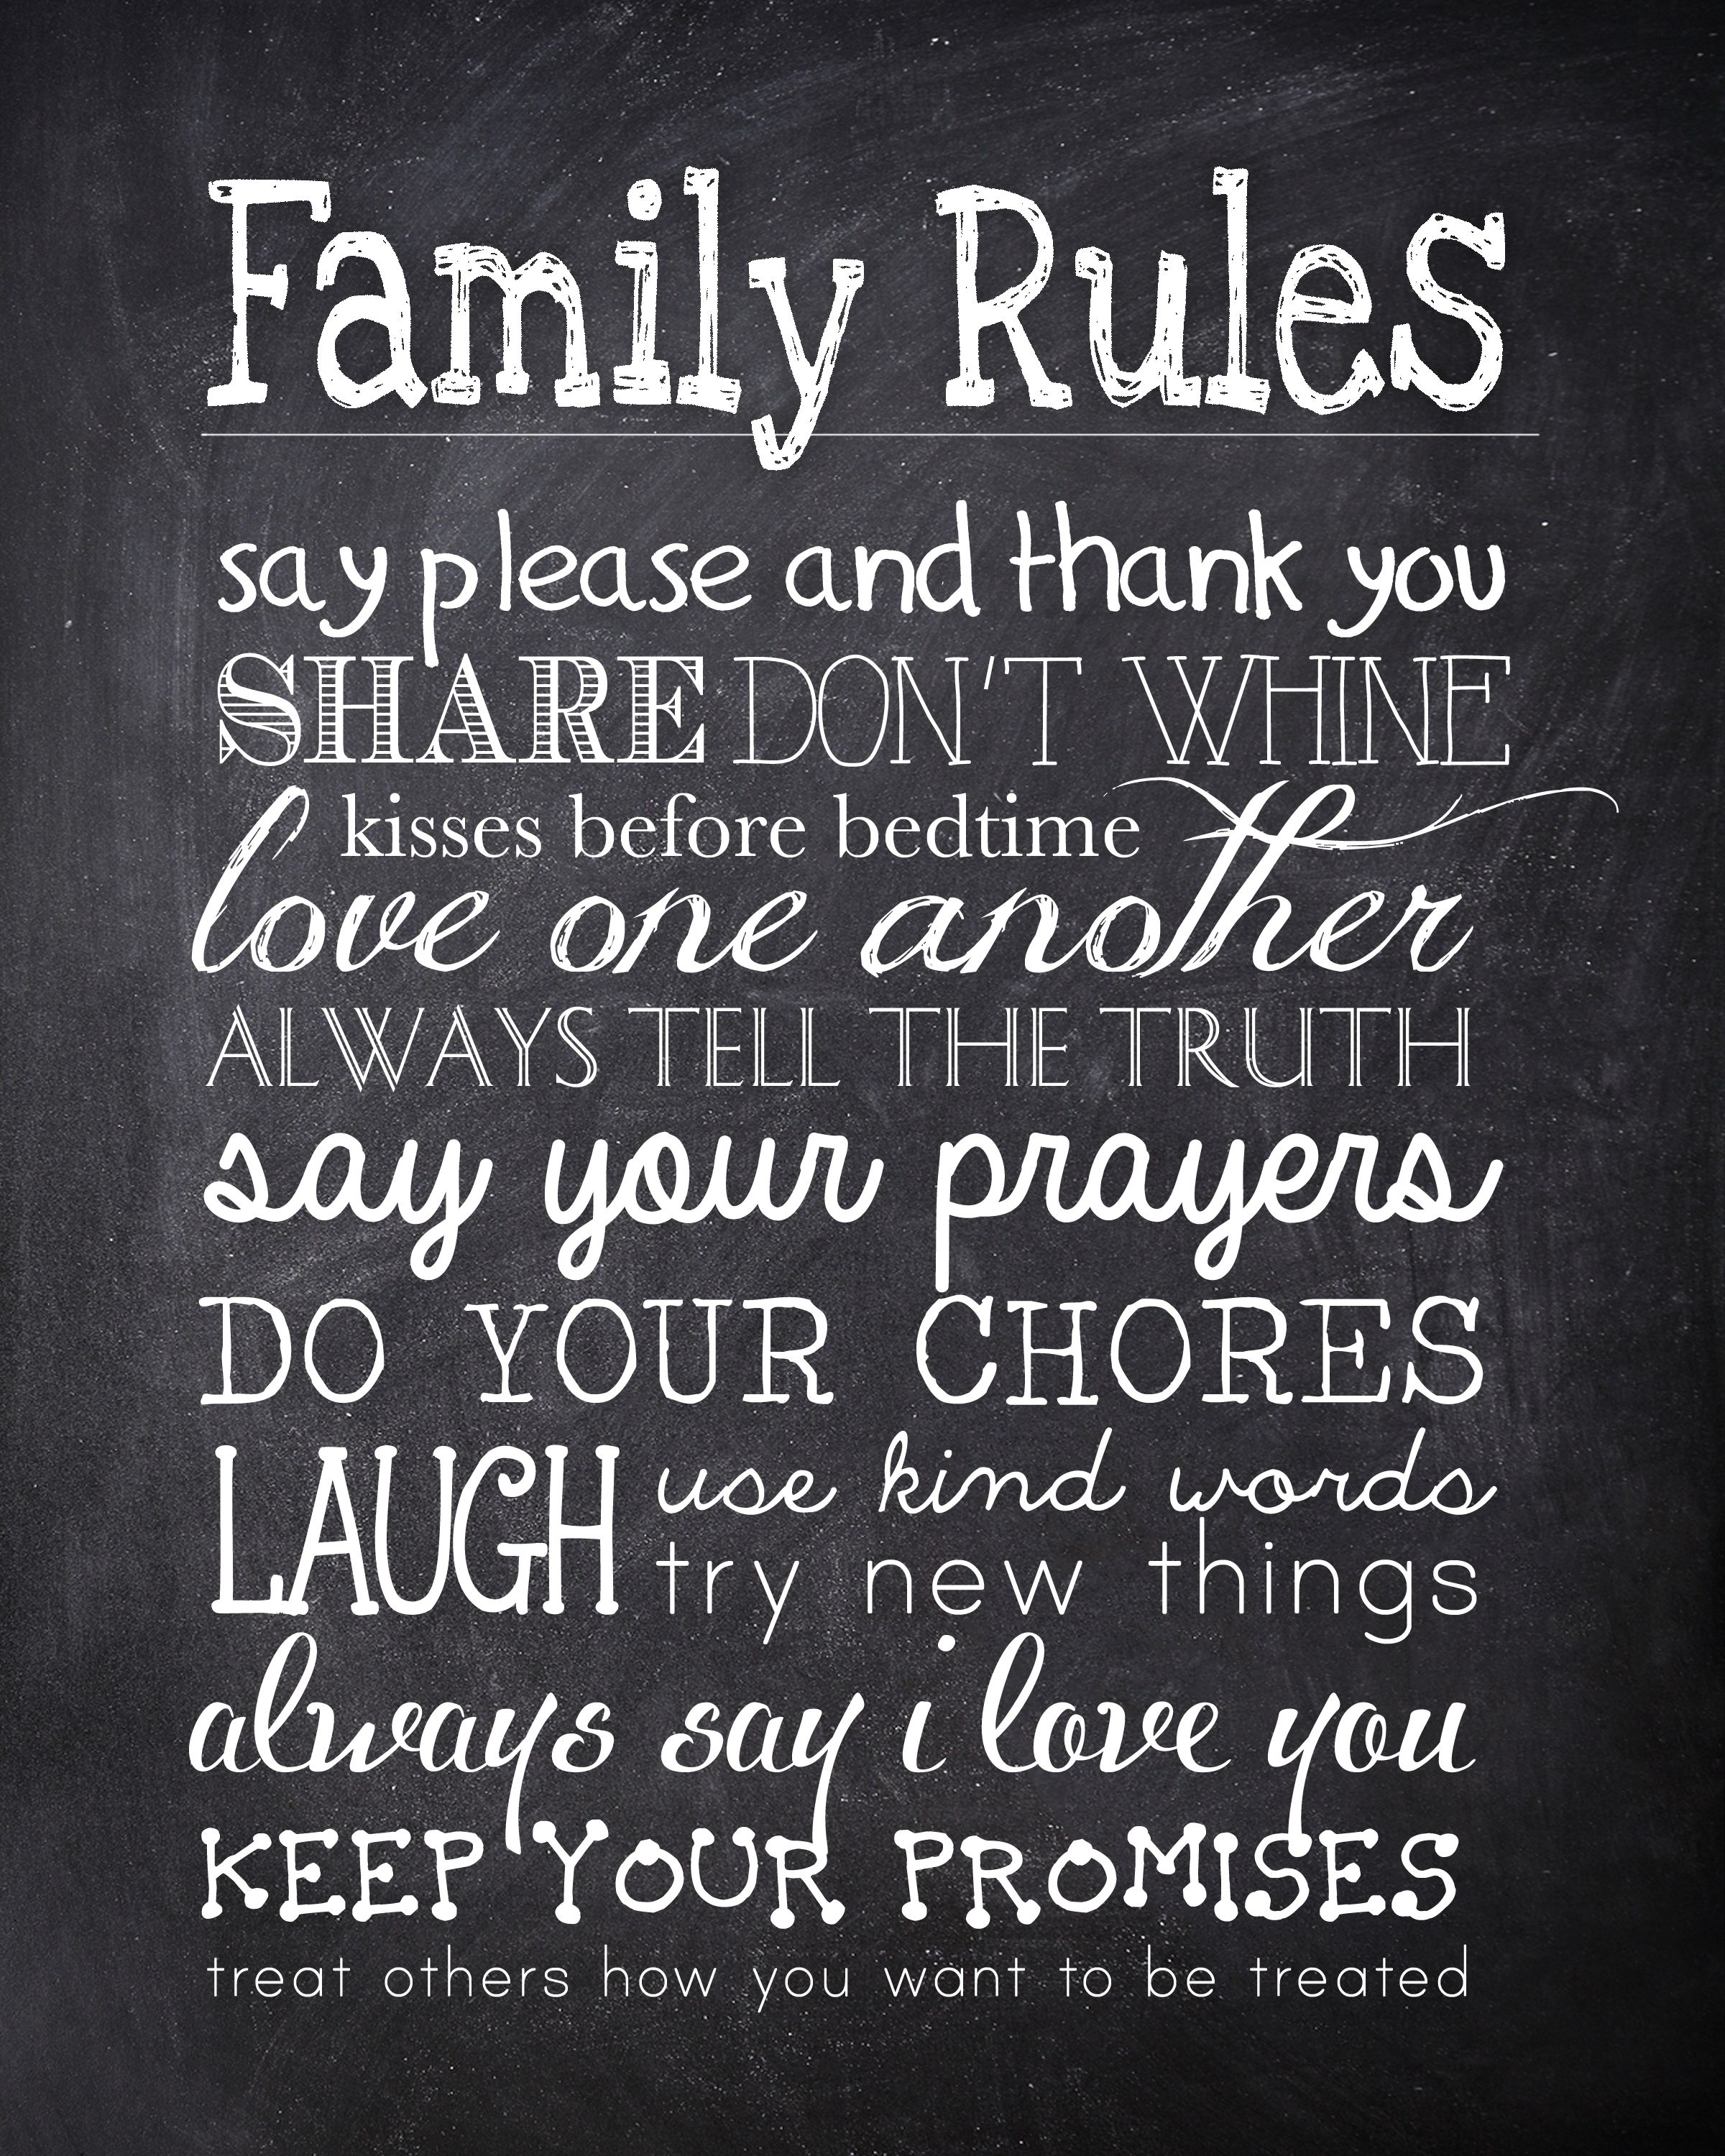 Printable kitchen art - Bathroom Rules Free Printable